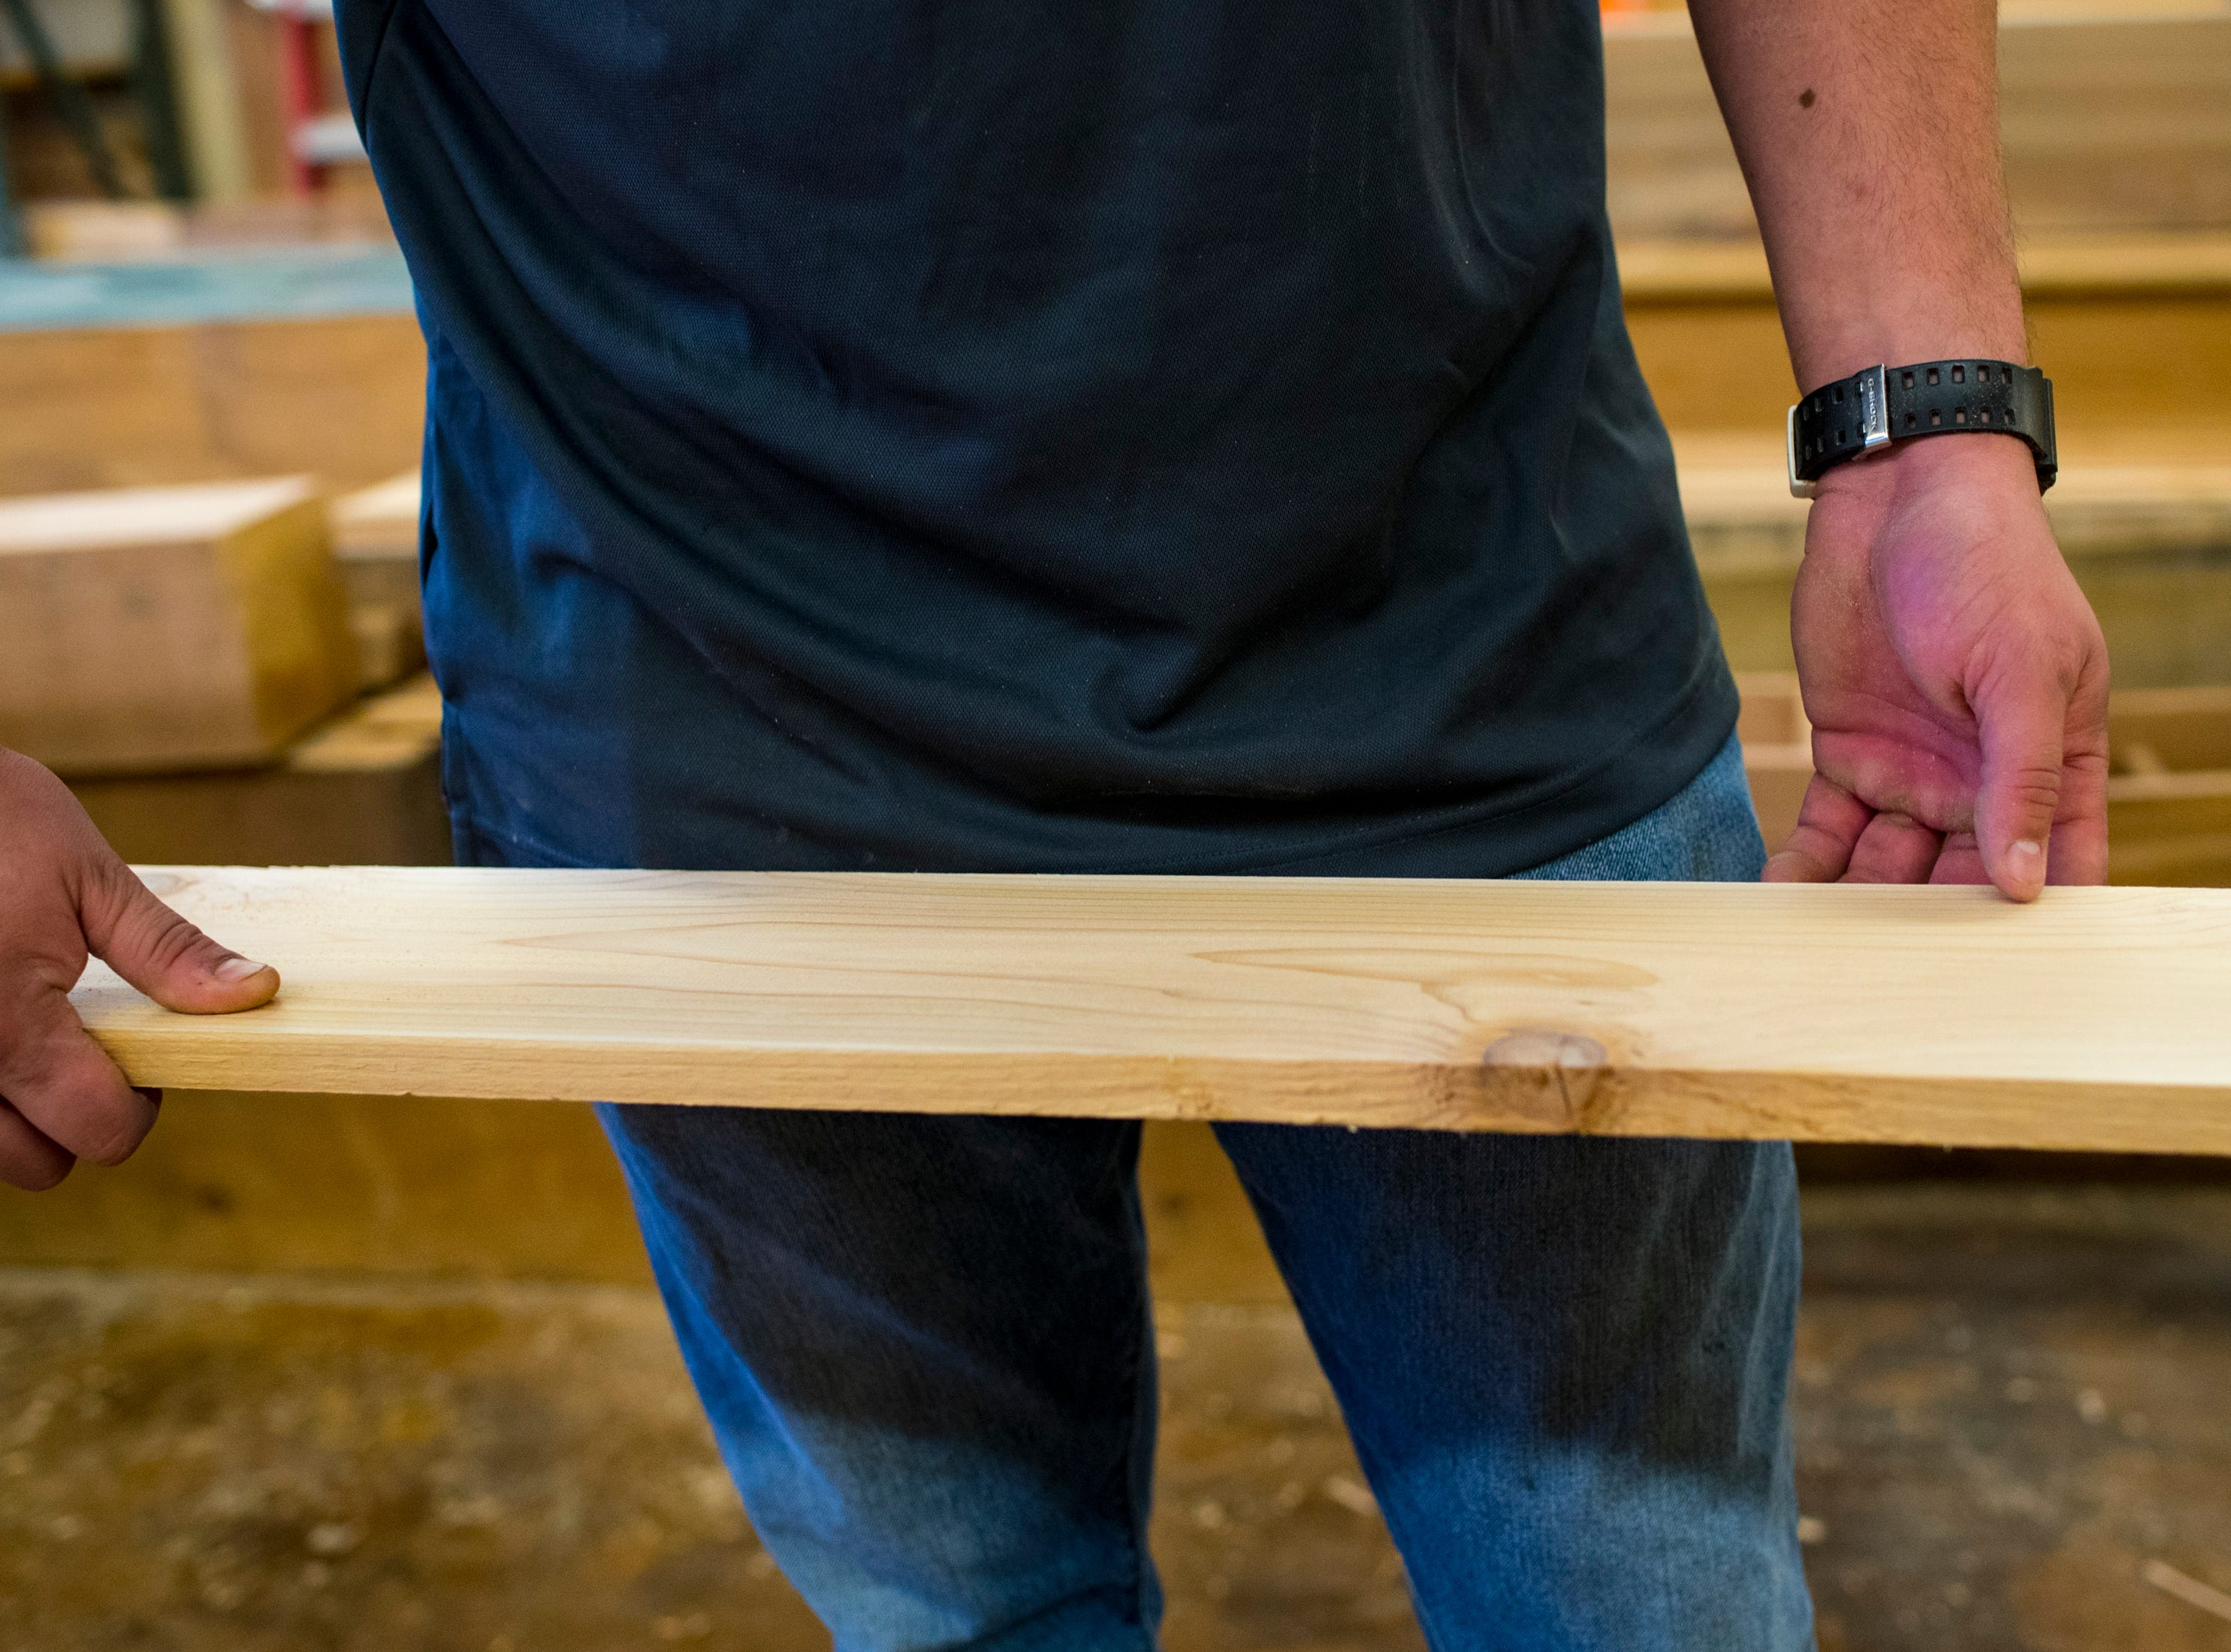 Colin Hemberg holds a board coming out of a planer at TN Box Beams in Franklin on Friday, Nov. 9, 2018. TN Box Beams will be featured on the HGTV show Property Brothers Buying + Selling on Nov. 14.